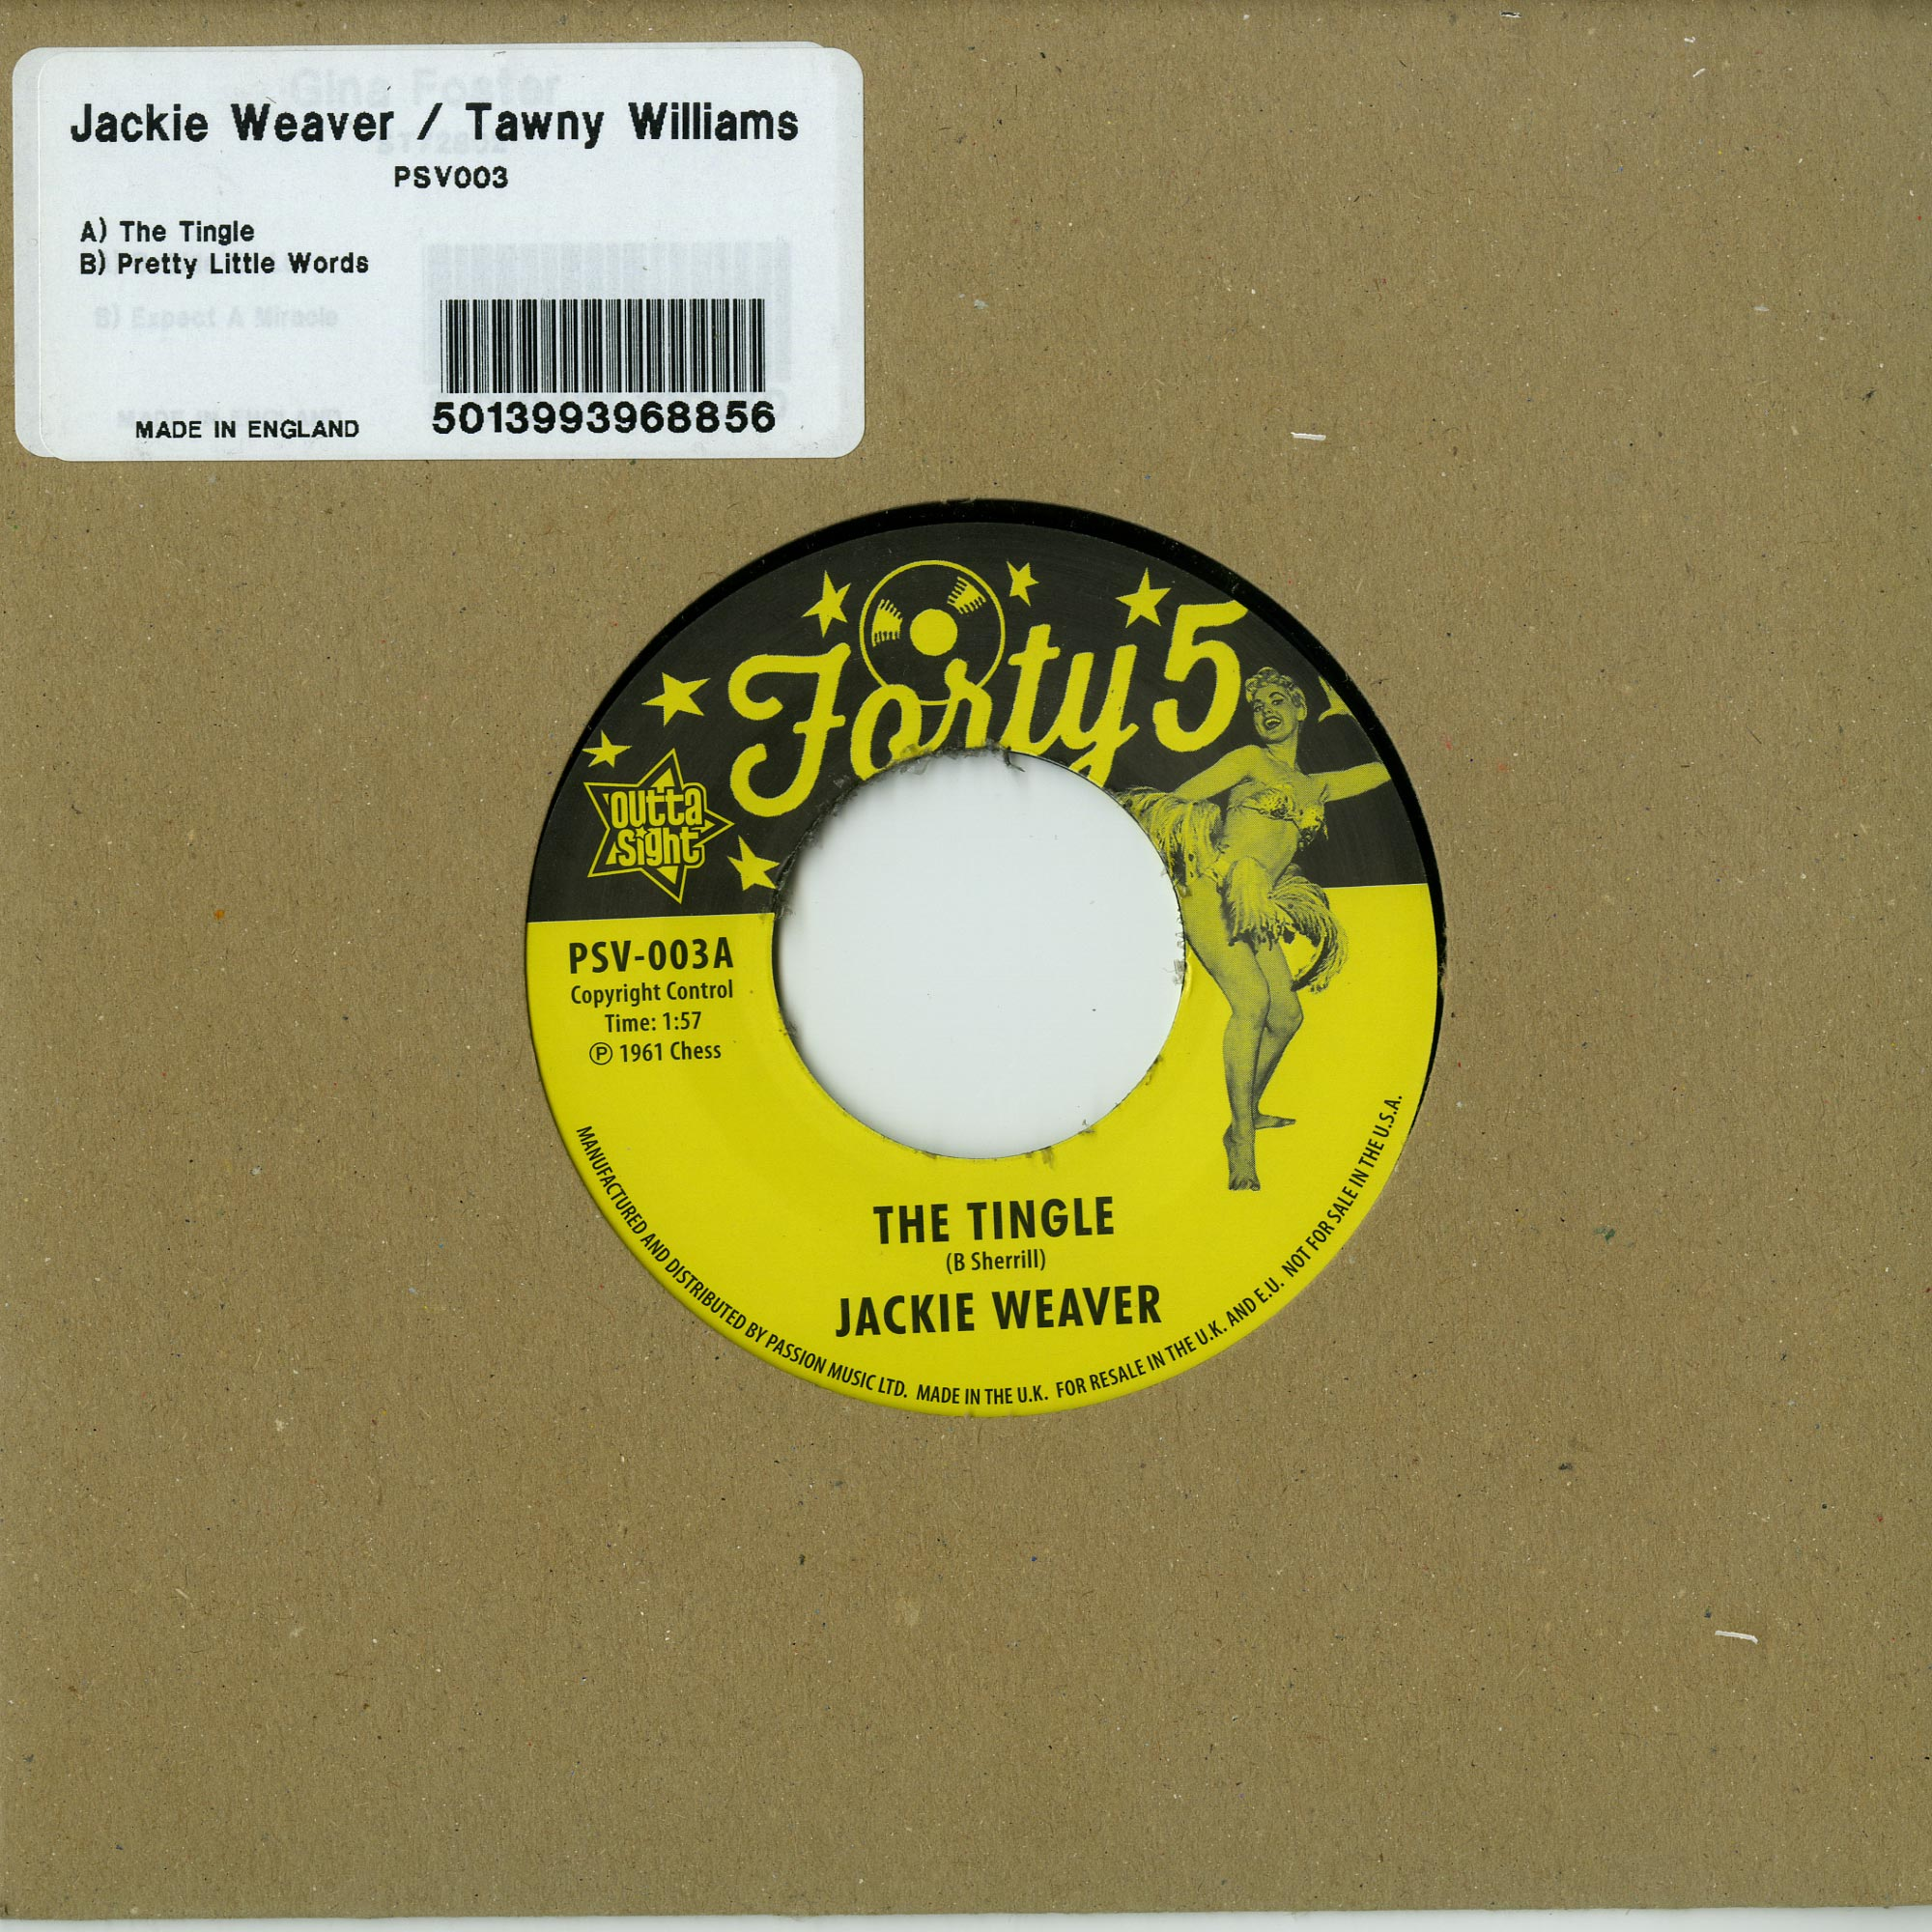 Jackie Weaver / Tawny Williams - THE TINGLE / PRETTY LITTLE WORDS